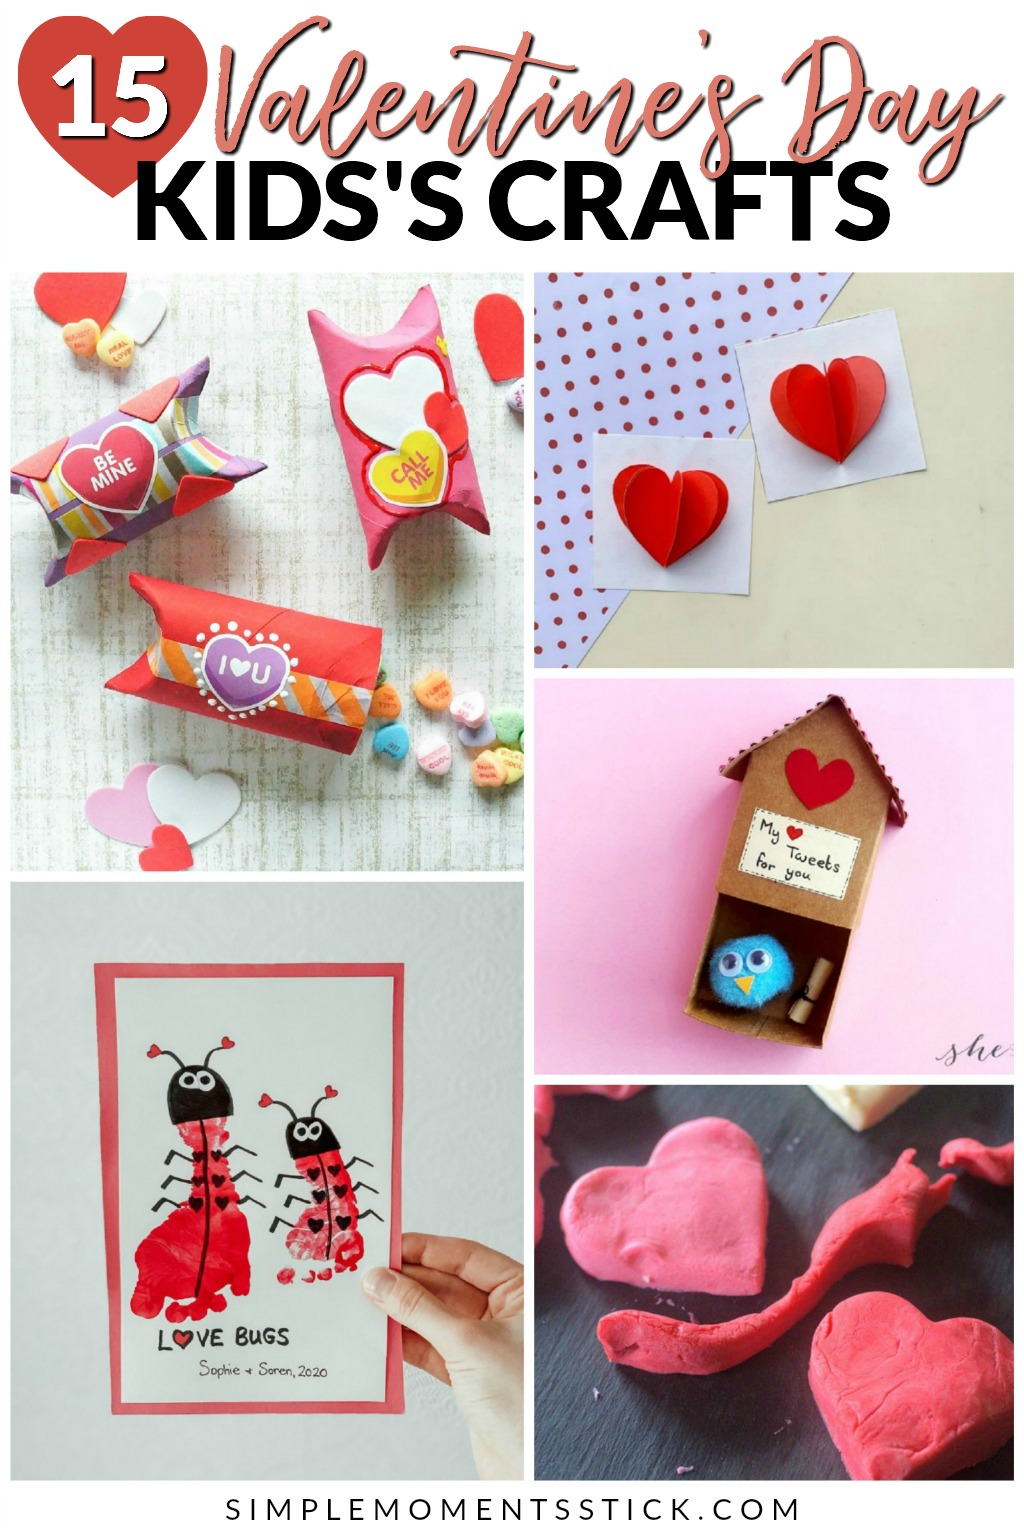 Valentine's Day kid's crafts. Easy peasy Valentine crafts. Valentine's Day crafts for kids